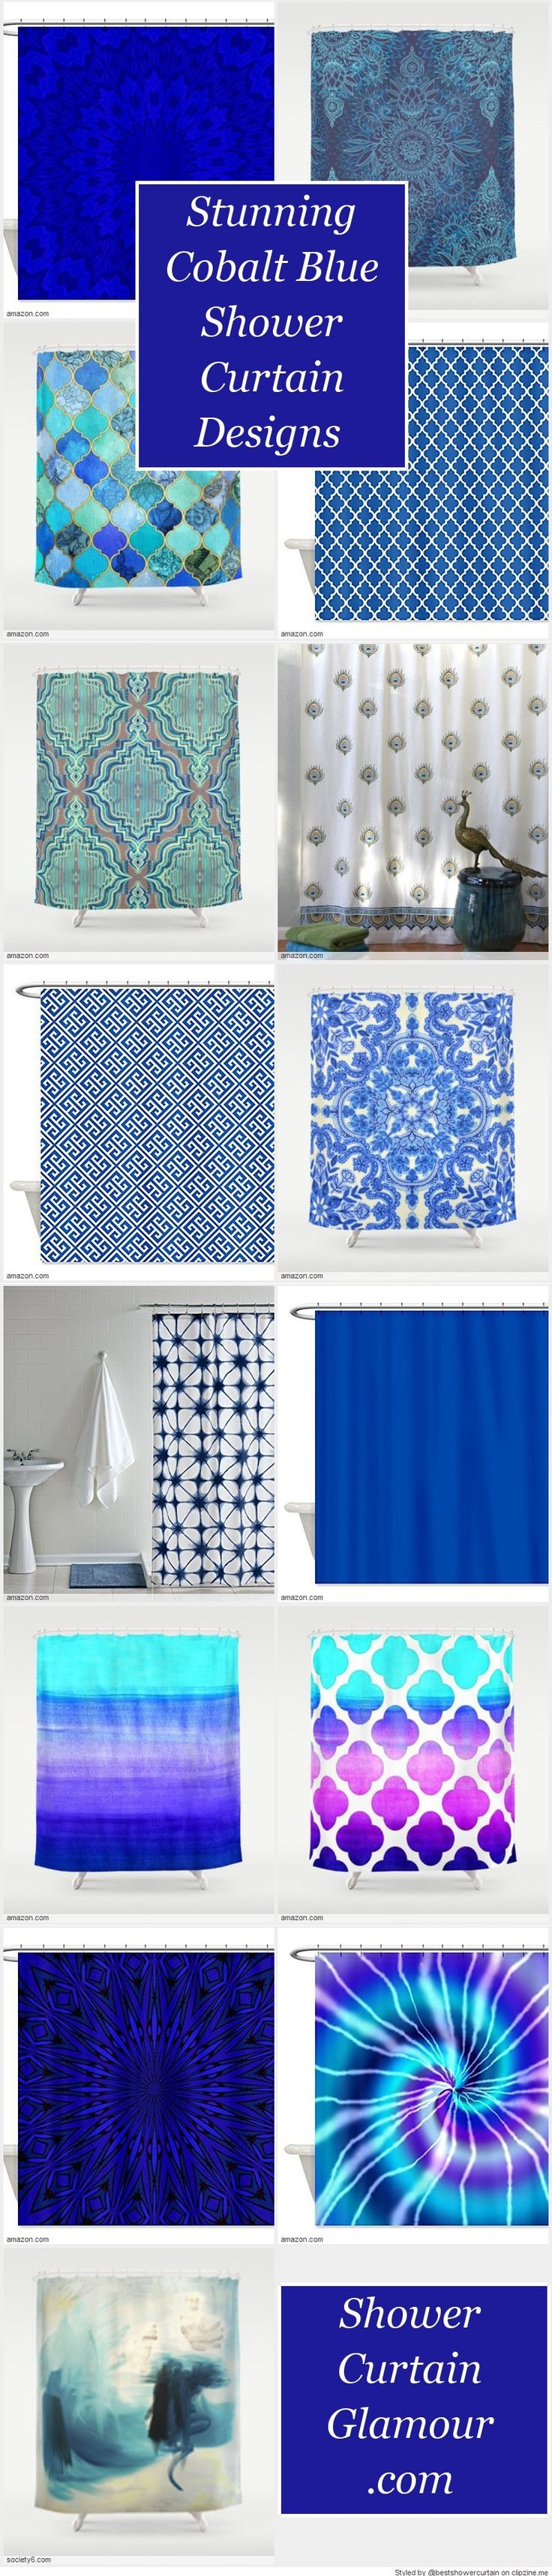 Find This Pin And More On Home Decor By Mimiagostinelli. Stunning Cobalt  Blue Shower Curtain ...